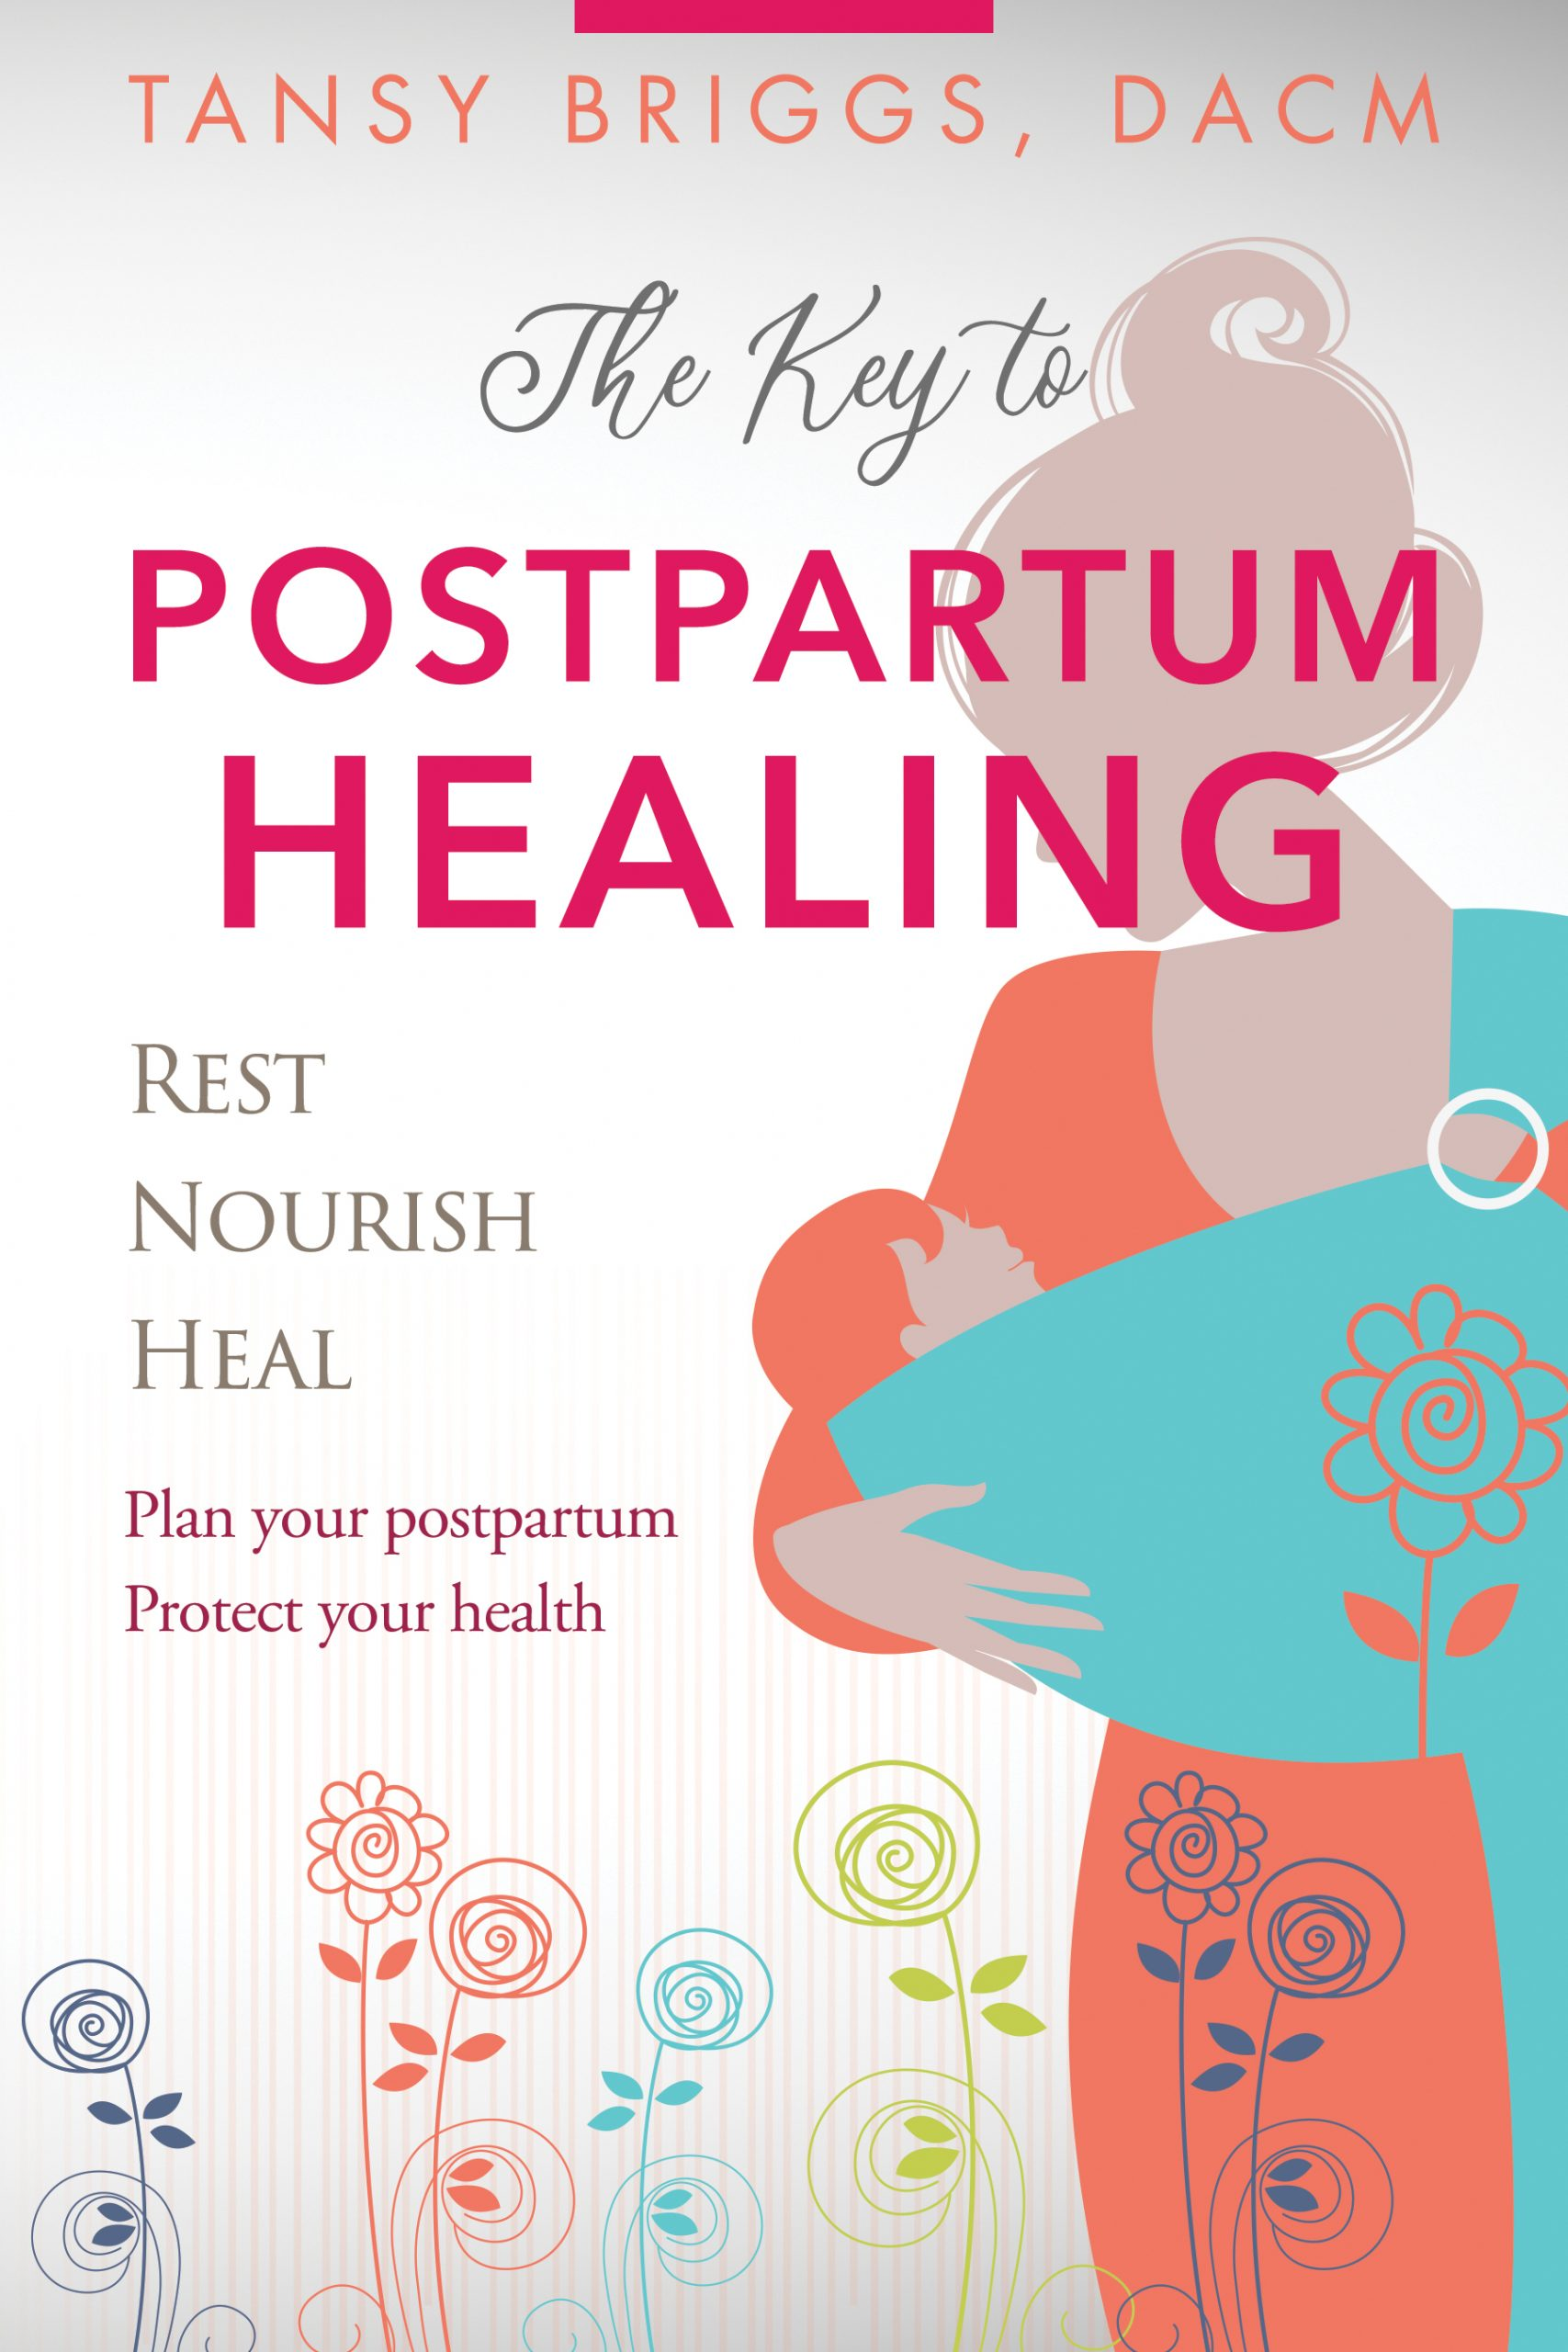 The Key to Postpartum Healing by Tansy Briggs, DACM